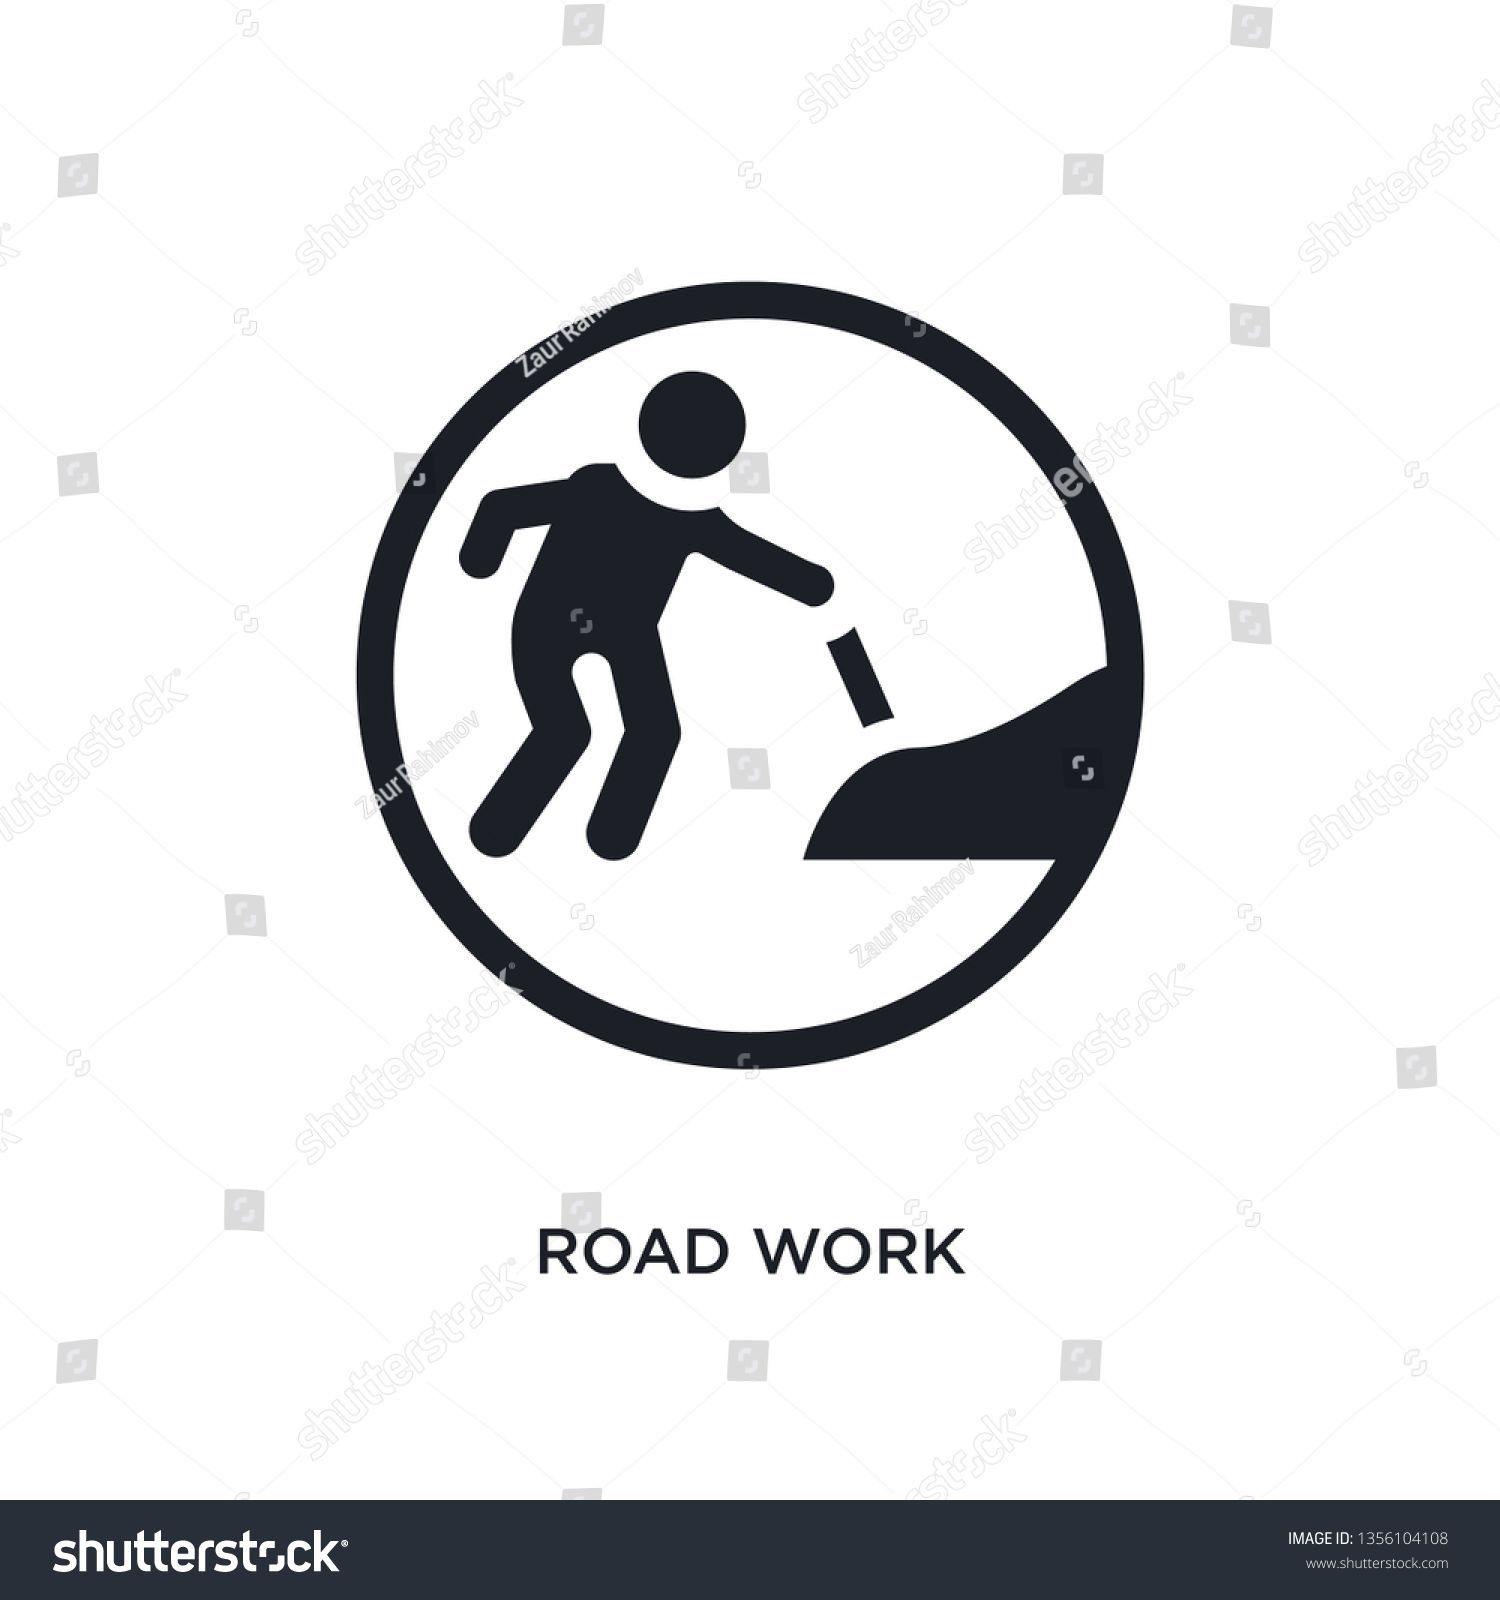 Black Road Work Isolated Vector Icon Stock Vector Royalty Free 1356104108 black road work isolated vector icon simple element illustration from traffic signs concept vect...